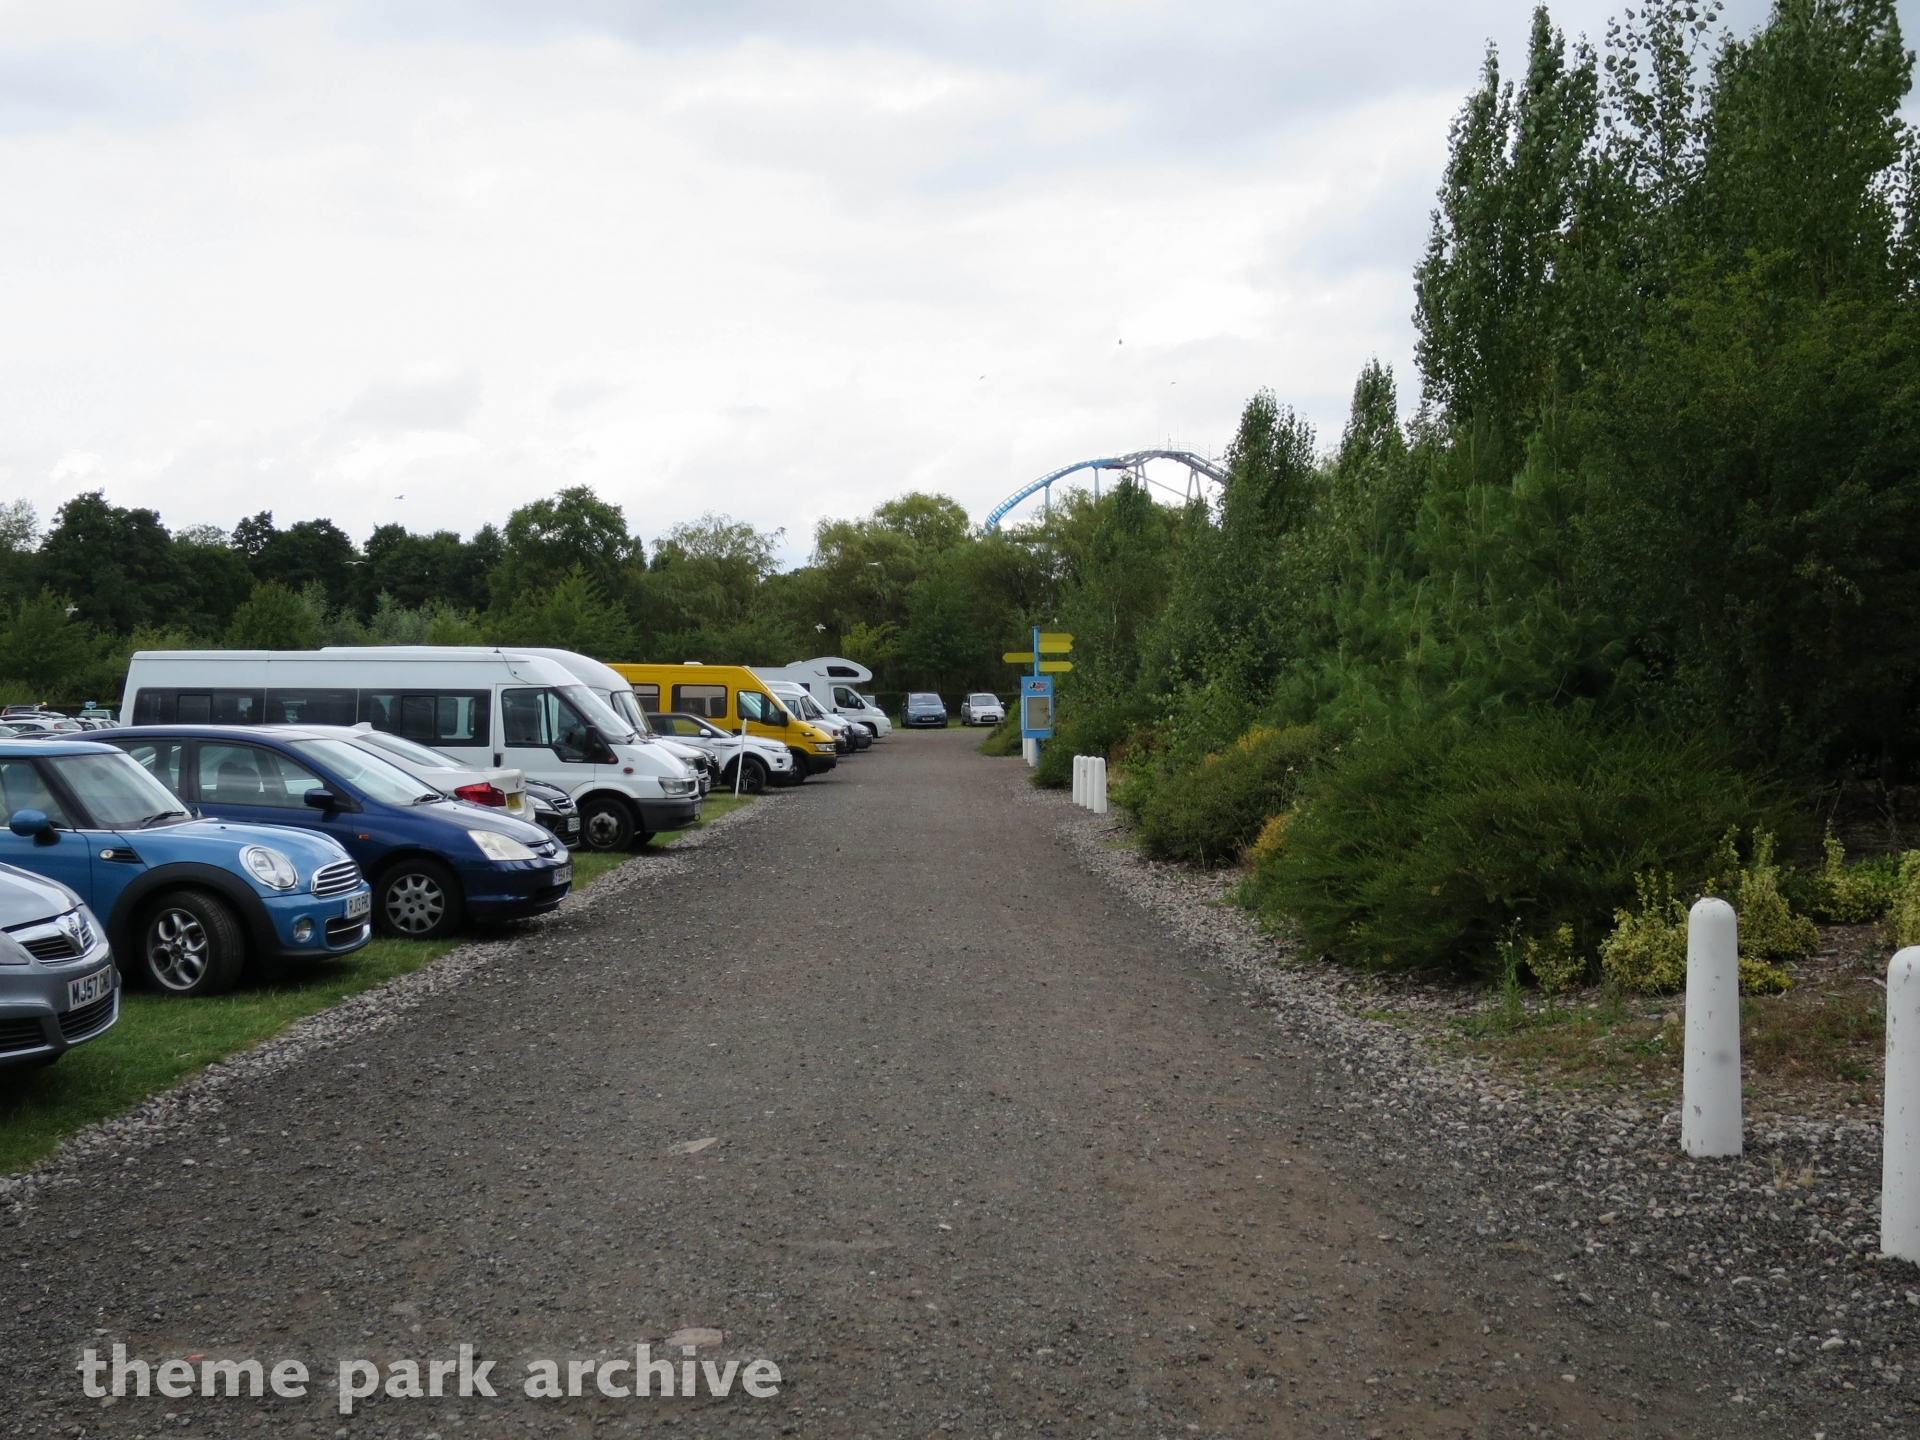 Parking at Drayton Manor